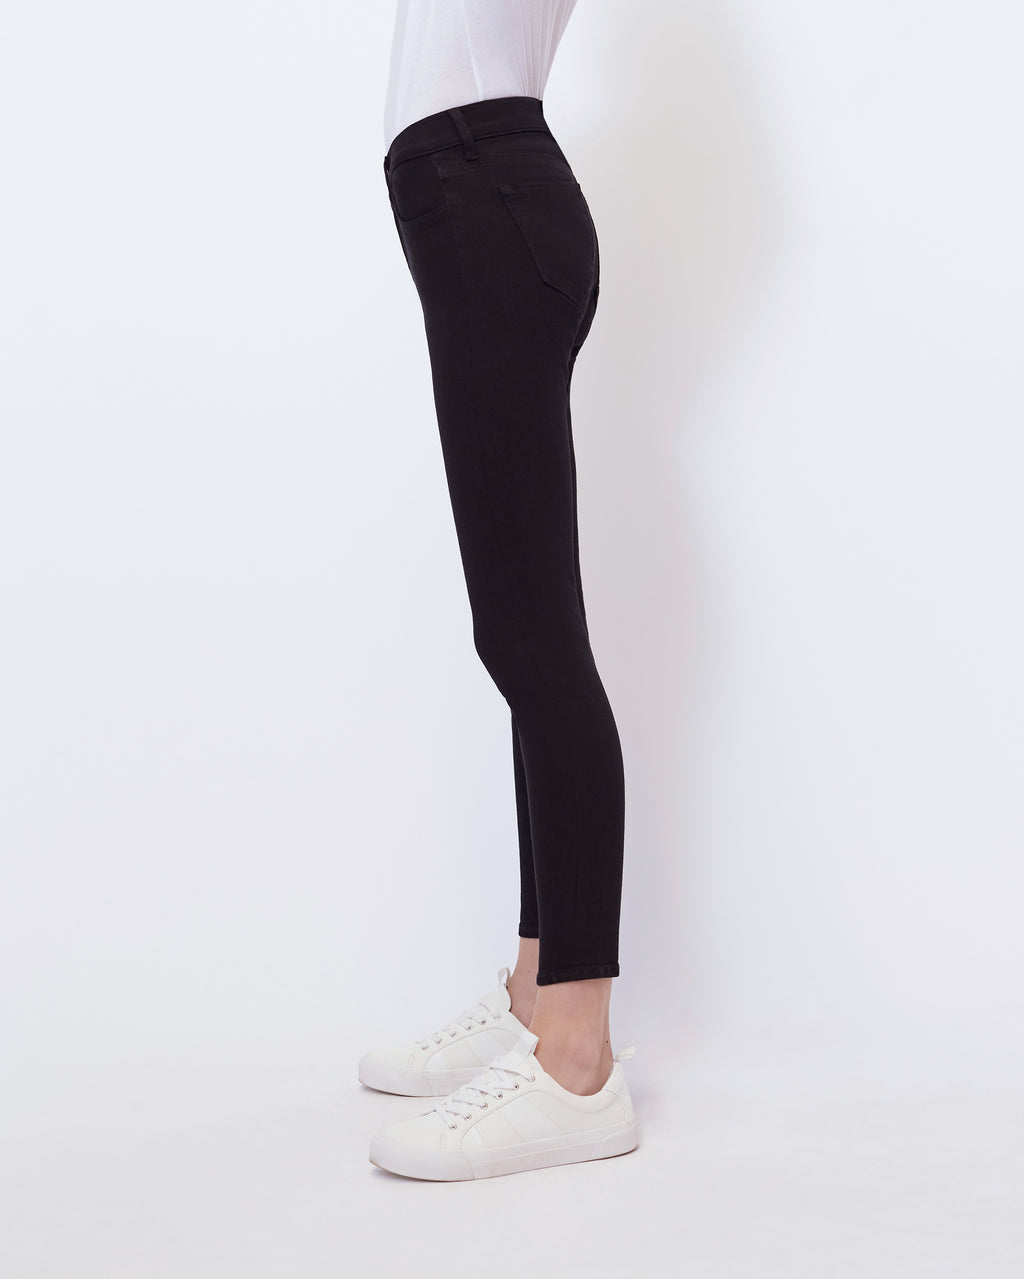 The Ankle Skinny Jean in Carbon Black